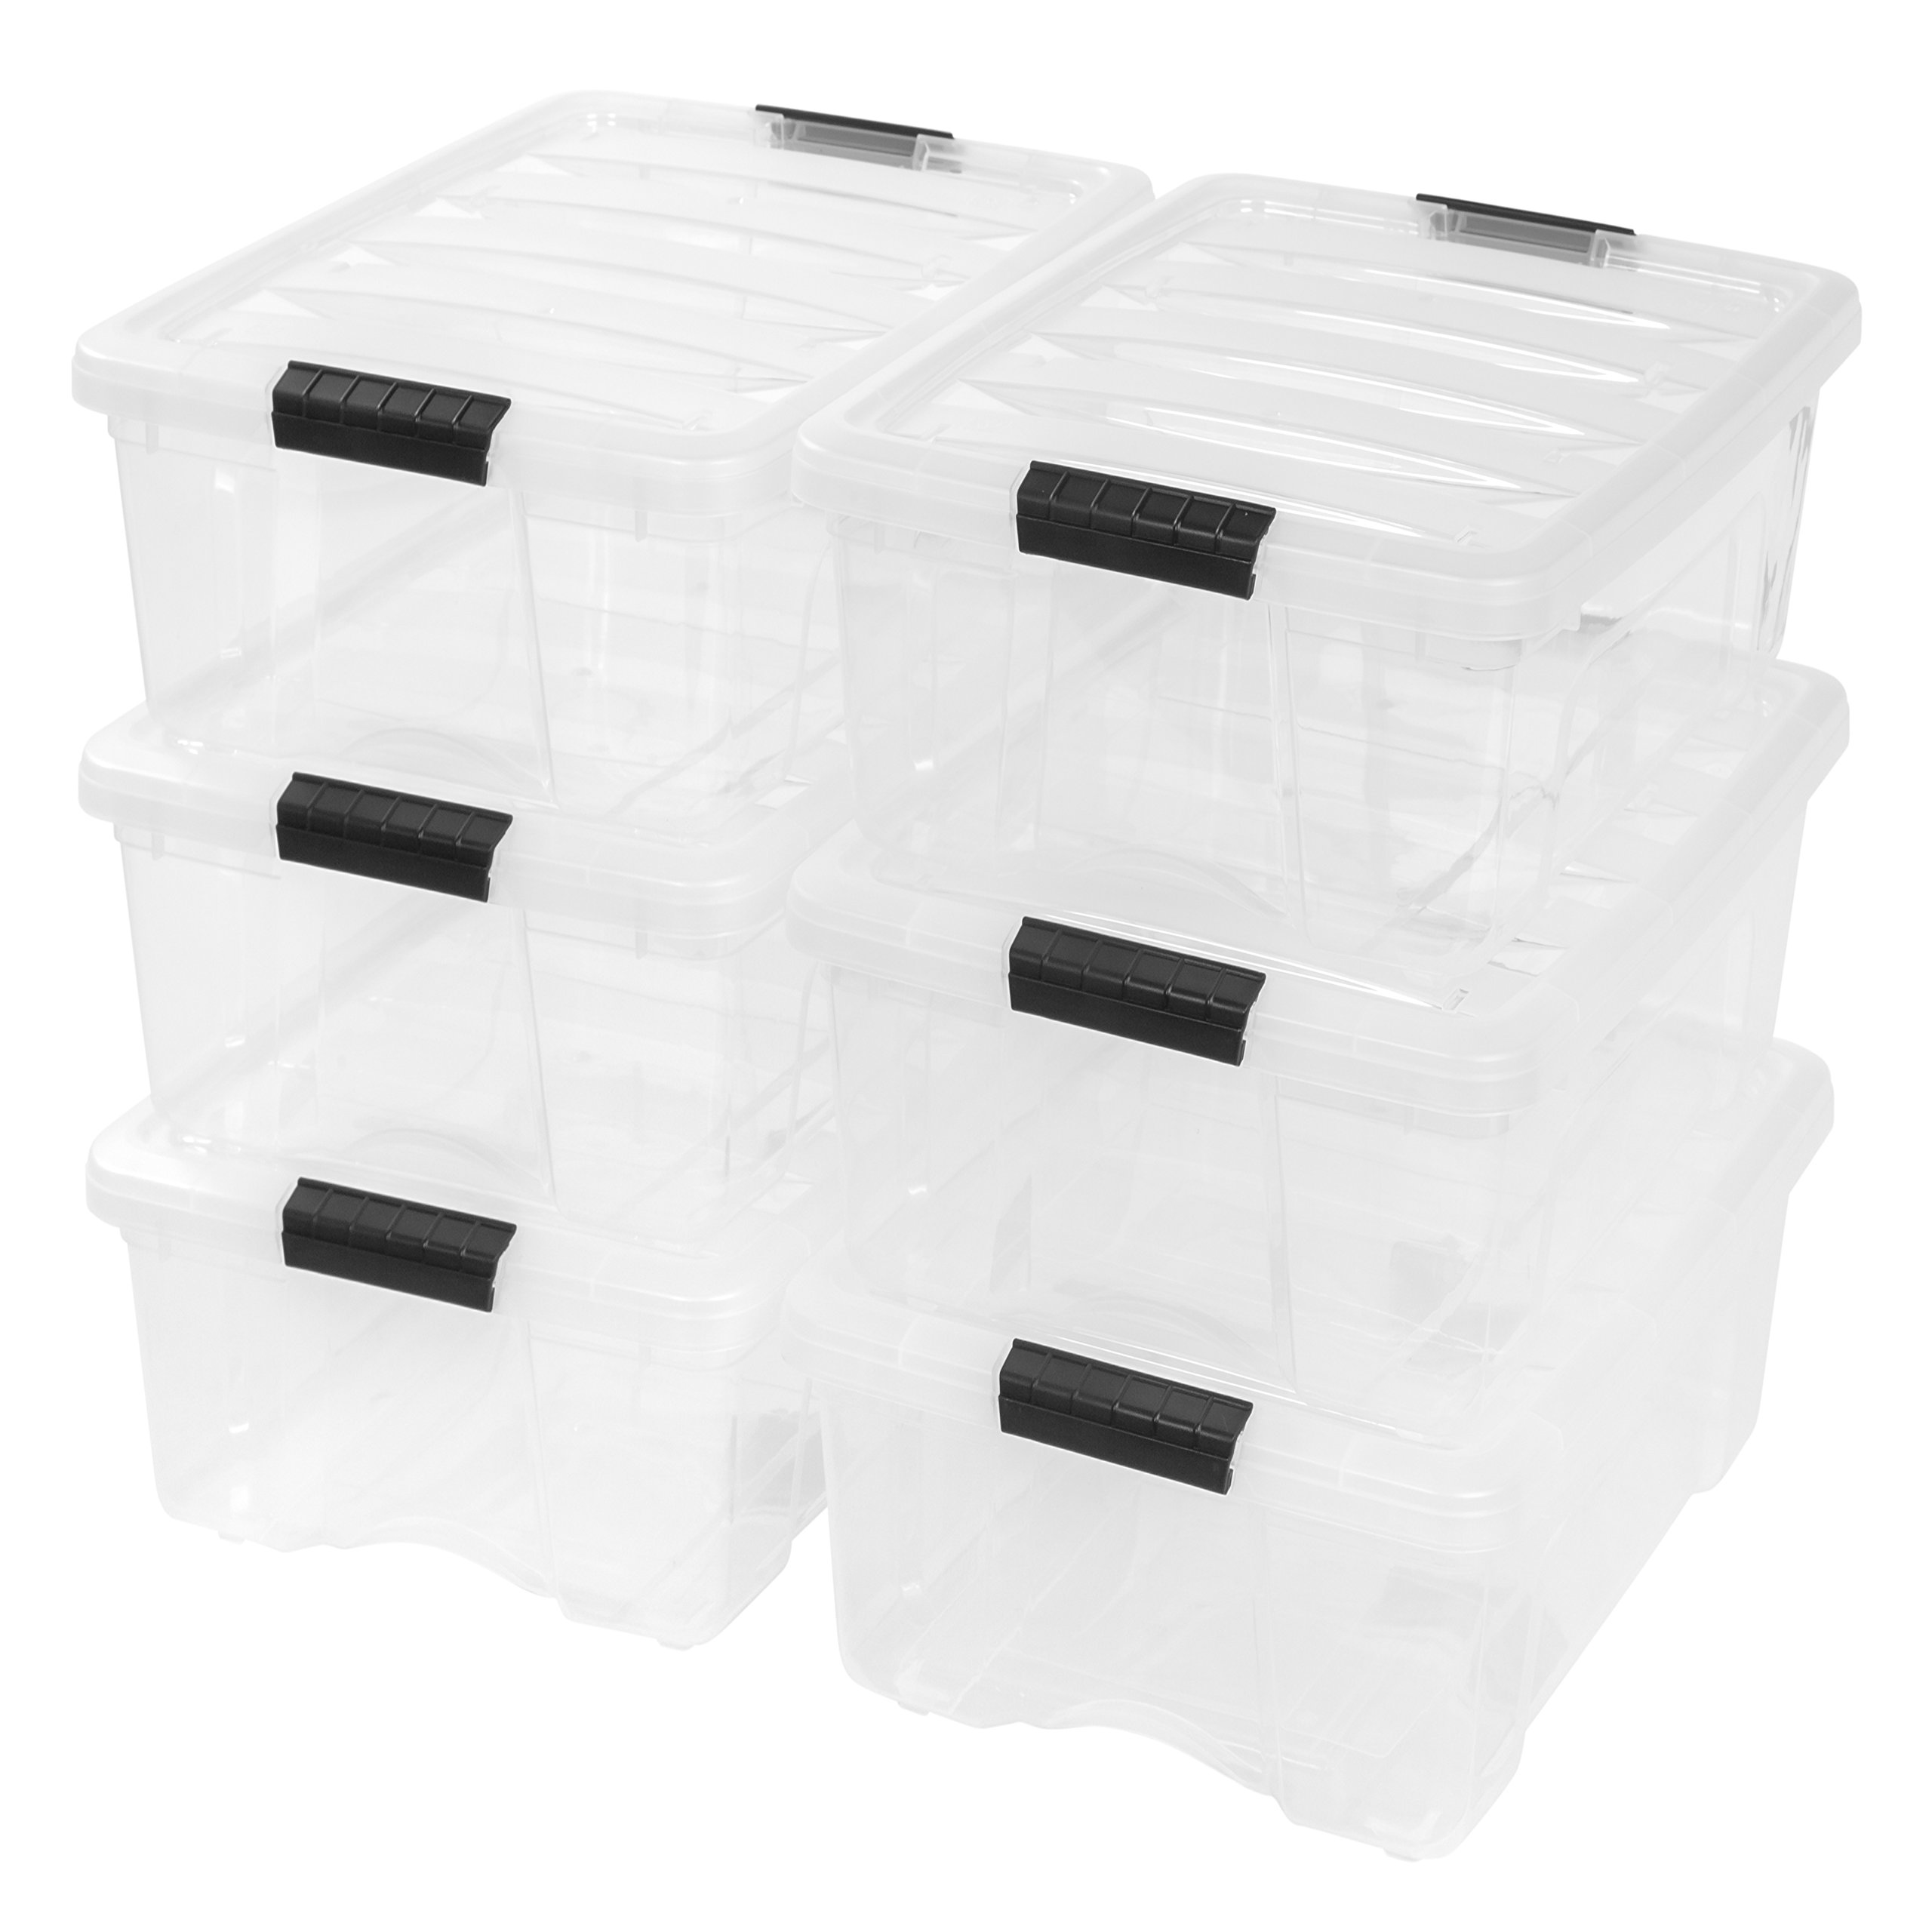 Standard 6-Piece Clear Storage Containers Set by Standard Storage Boxes